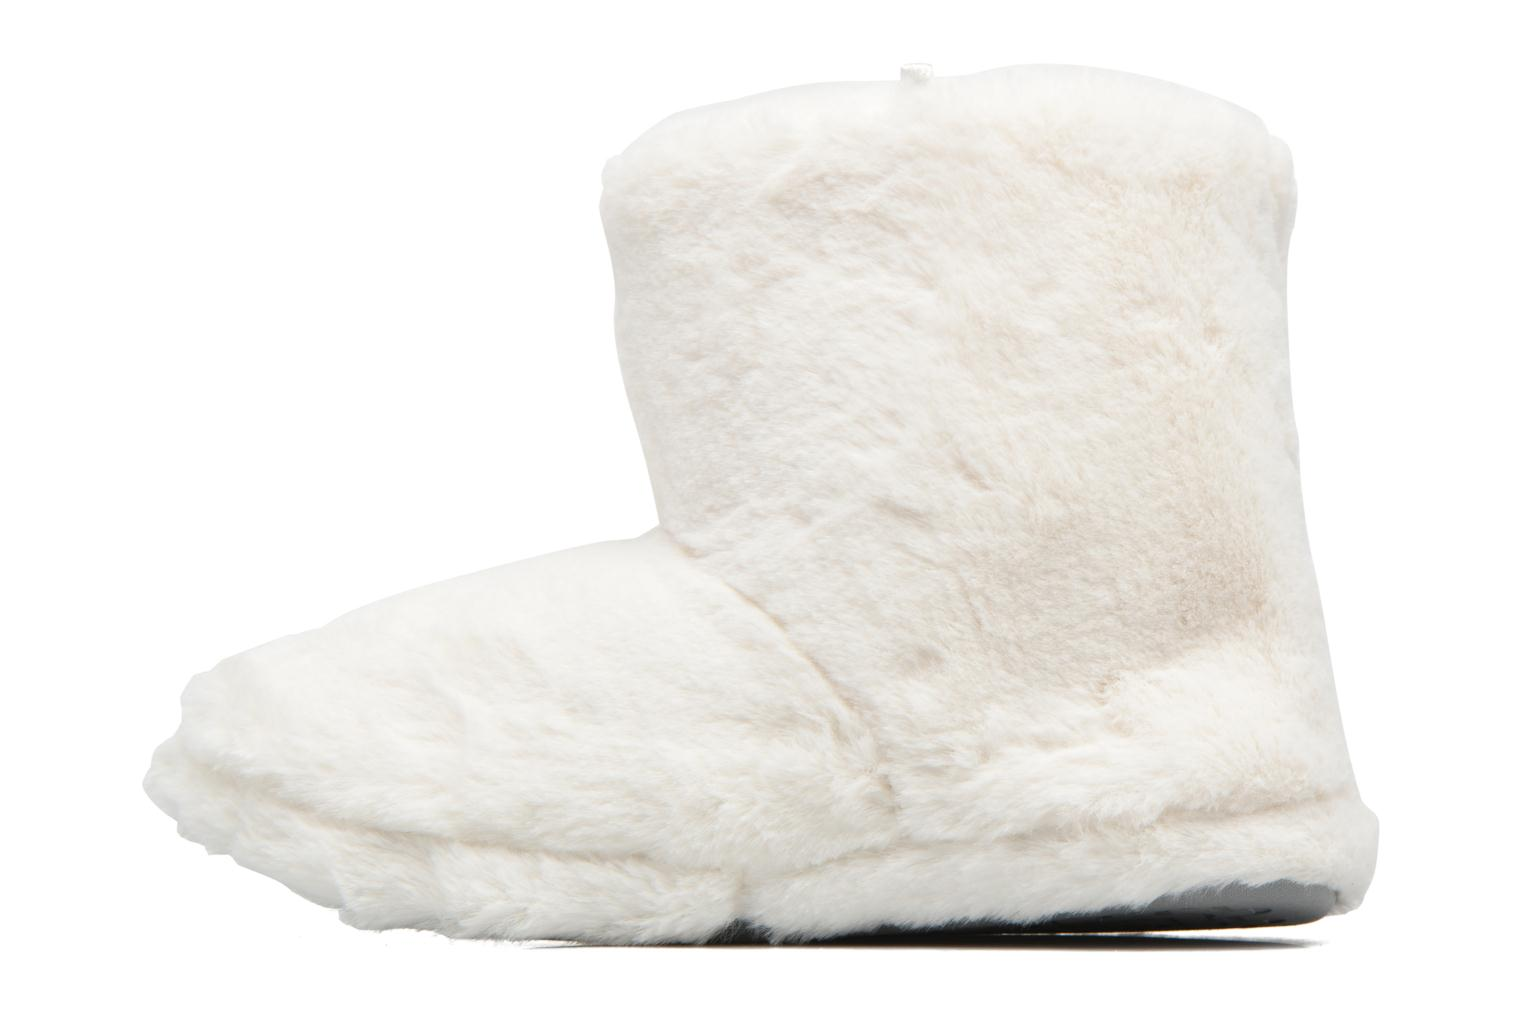 Chaussons Boots Femme Etoile Blanc